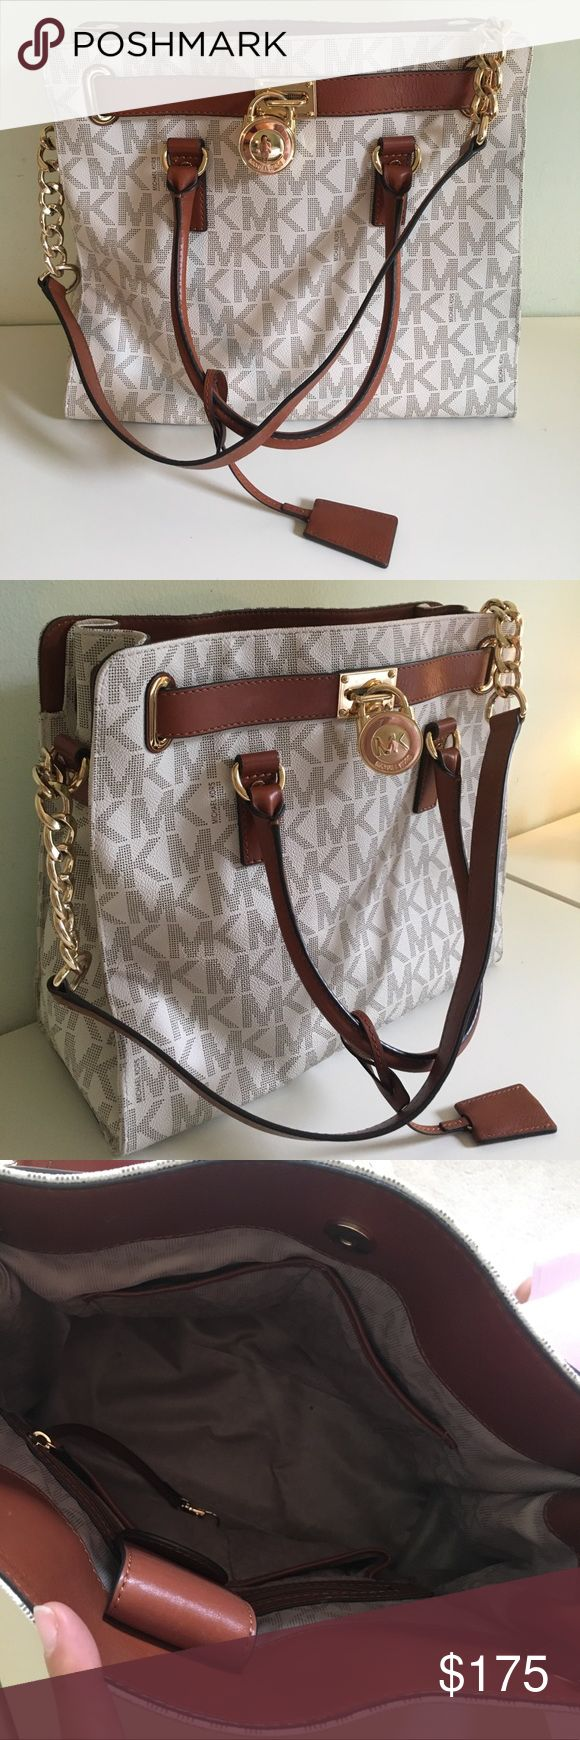 Michael Kors Hamilton Purse Received as a present. Beautiful handbag. Only used a handful of times. Michael Kors Bags